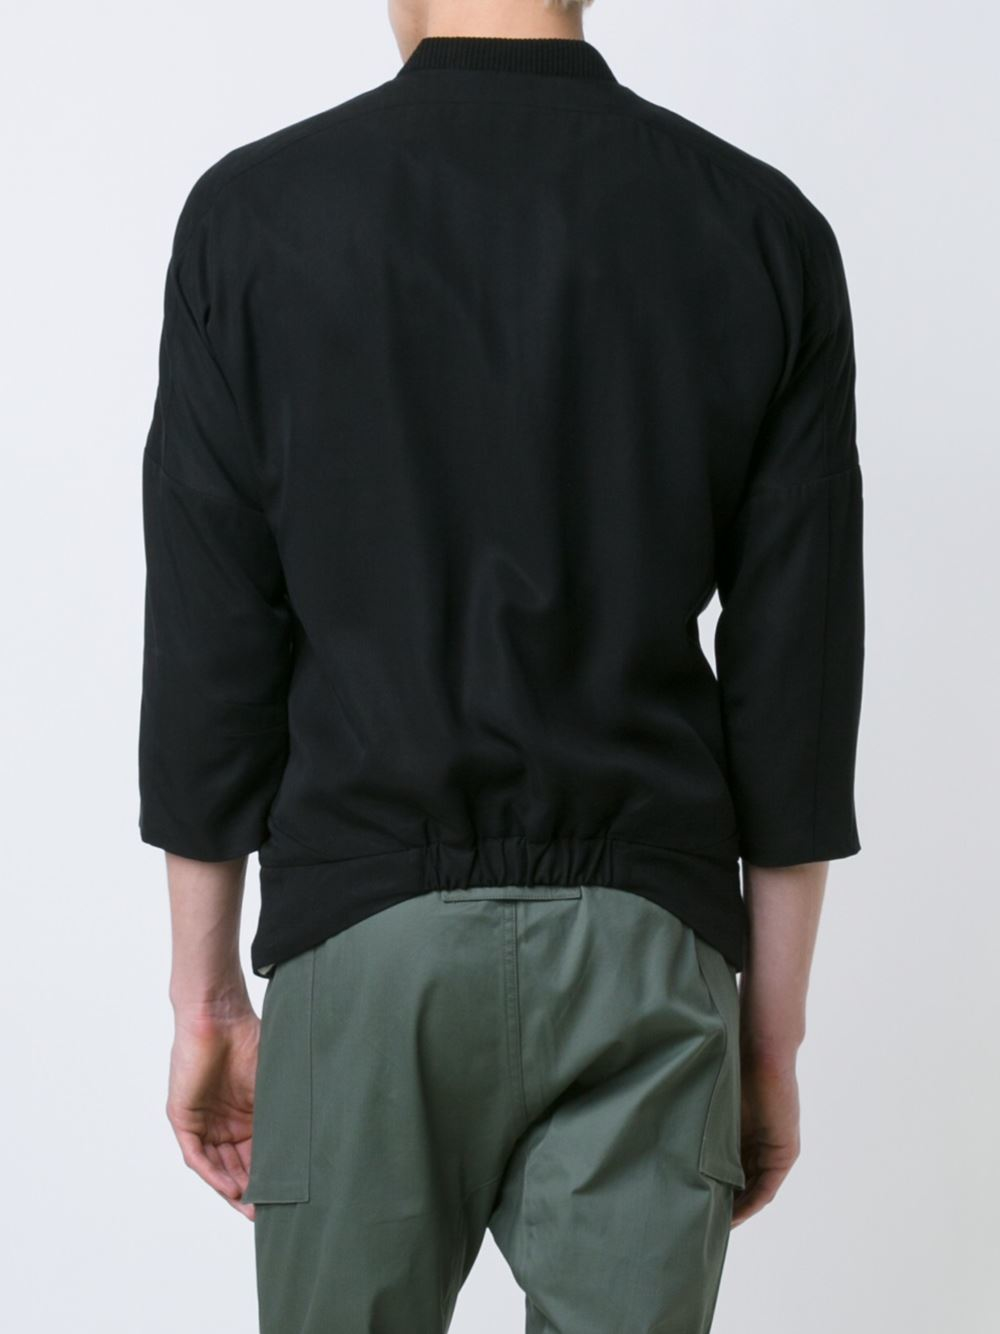 Lyst - Chapter Three-quarters Sleeve Lightweight Jacket In Black For Men